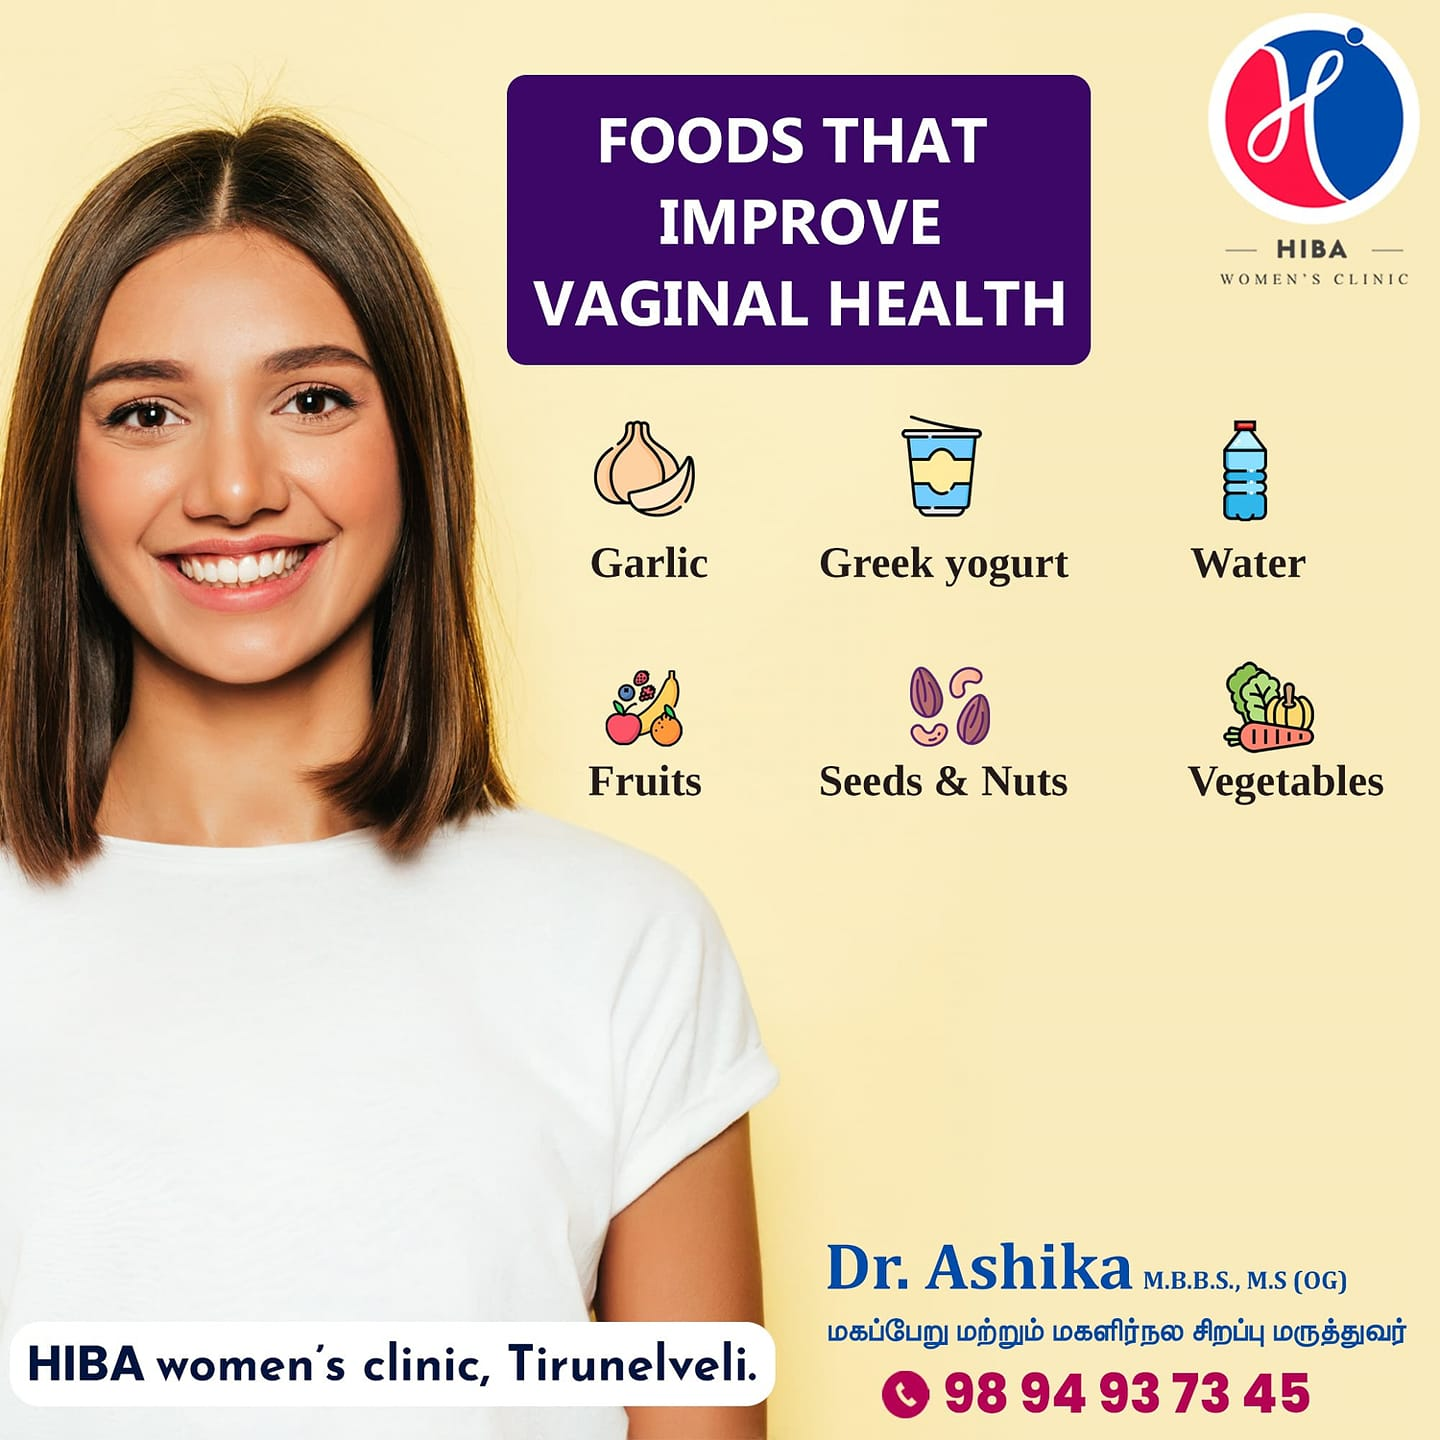 You are currently viewing Foods that Improve Vaginal Health